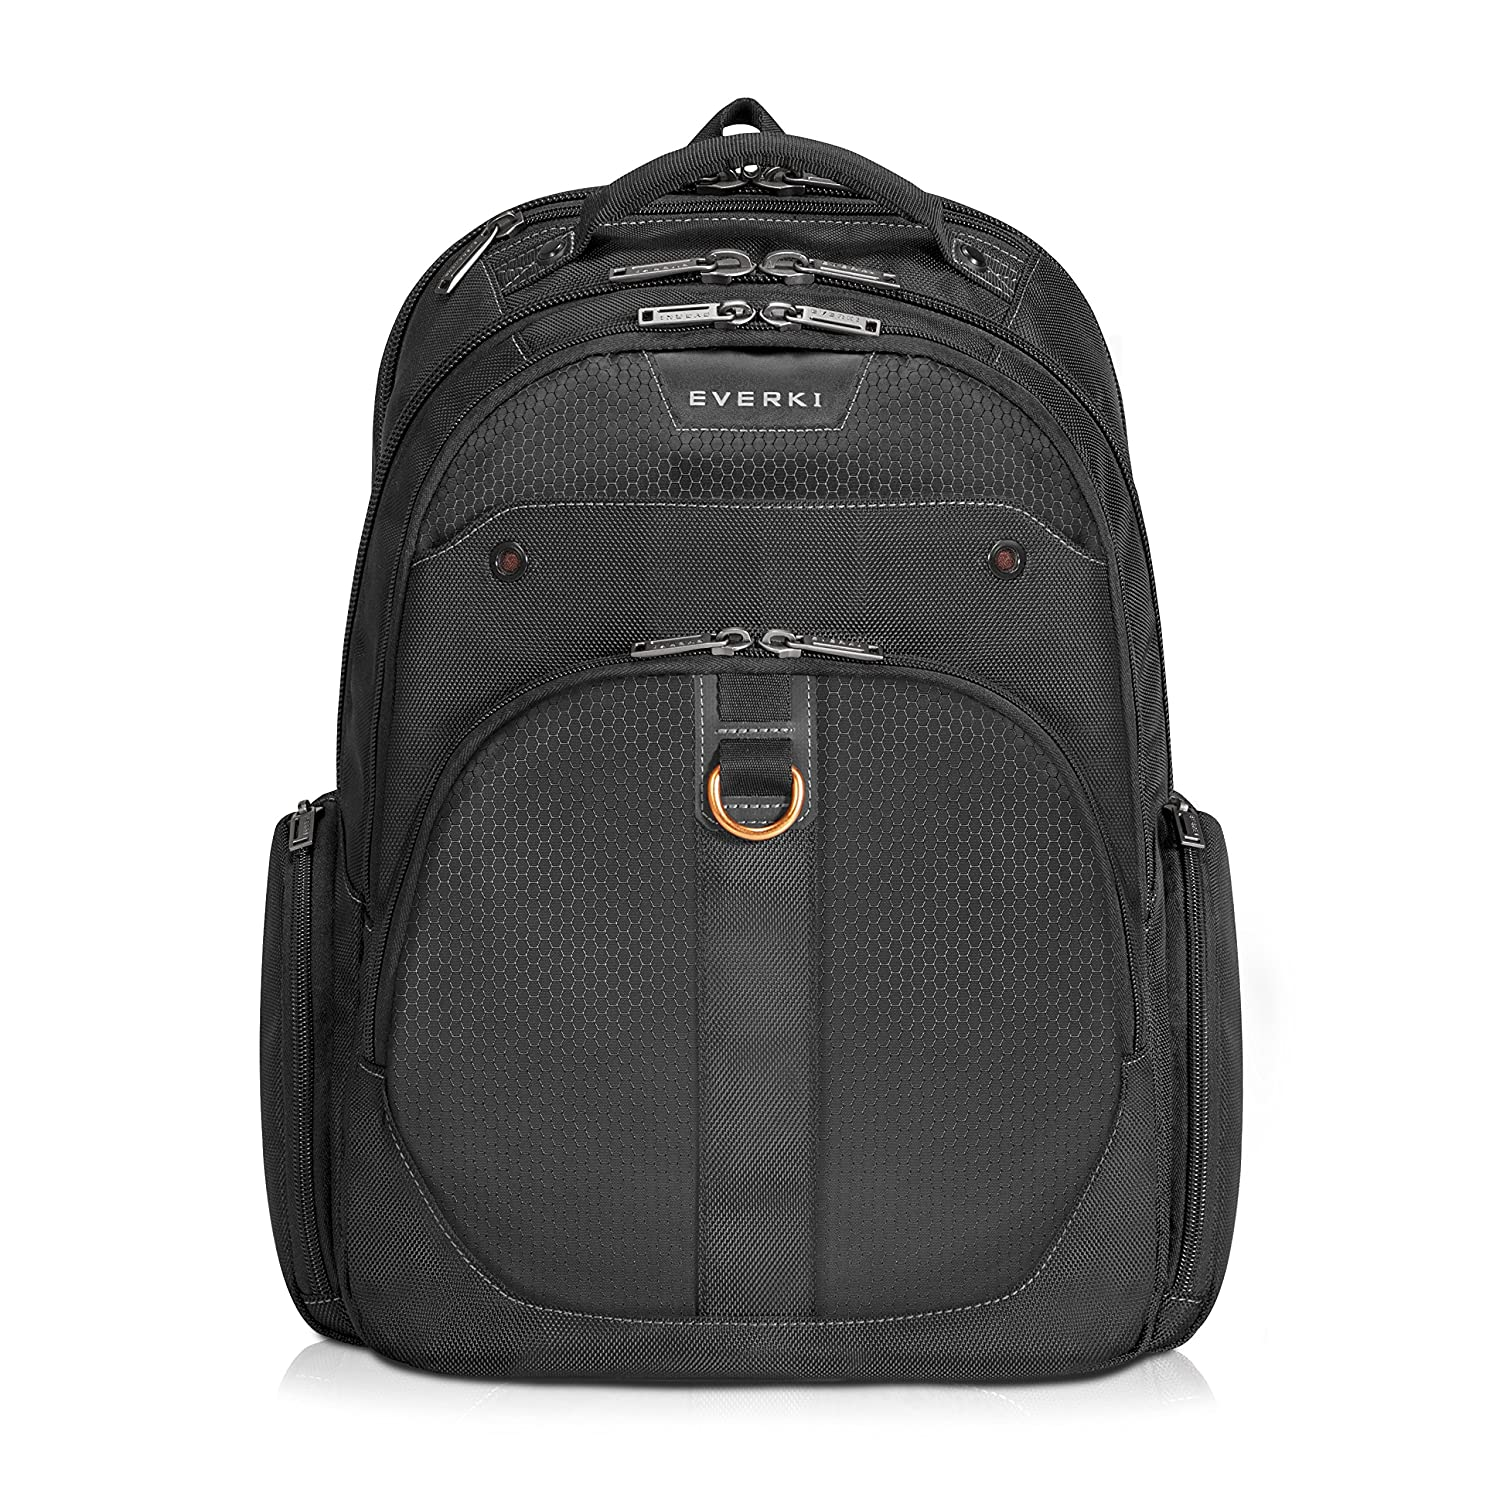 everki laptop backpack review